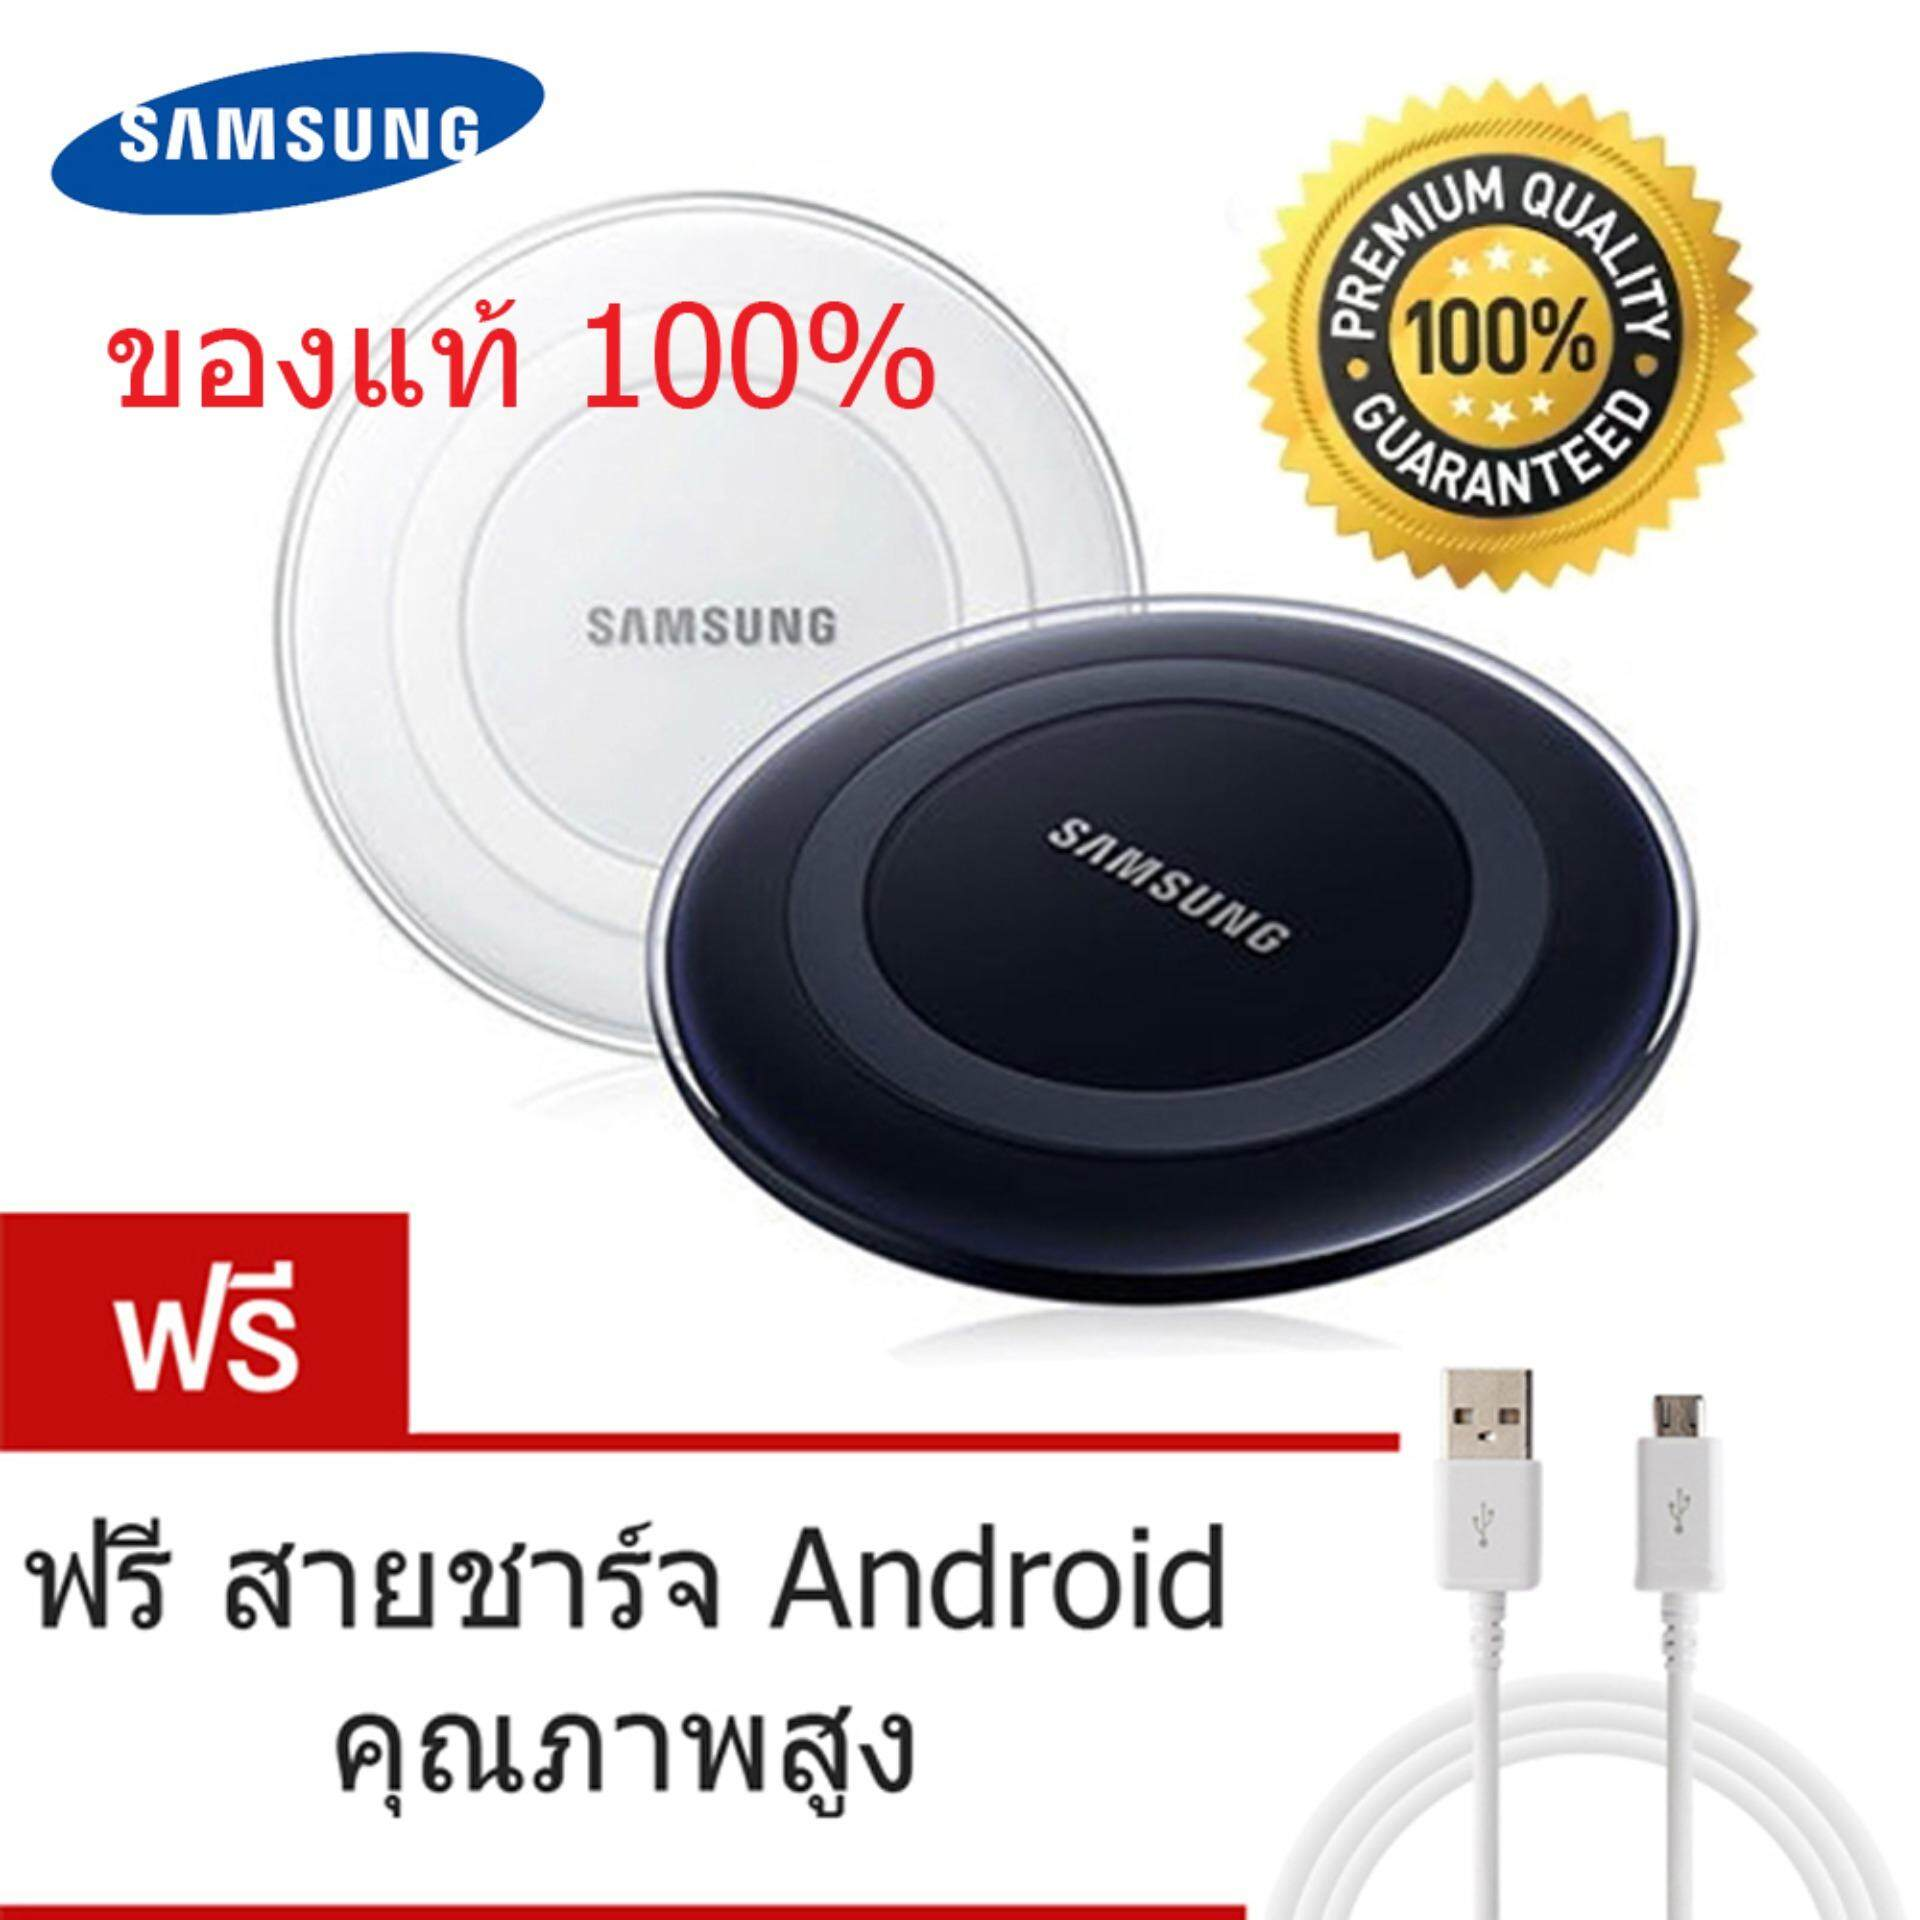 ซื้อ Samsung Wireless Charging Pad สำหรับ Galaxy Note 5 S3 S4 S5 Note Edge Android Apple Iphone 6 6S 6S Plus ถูก กรุงเทพมหานคร